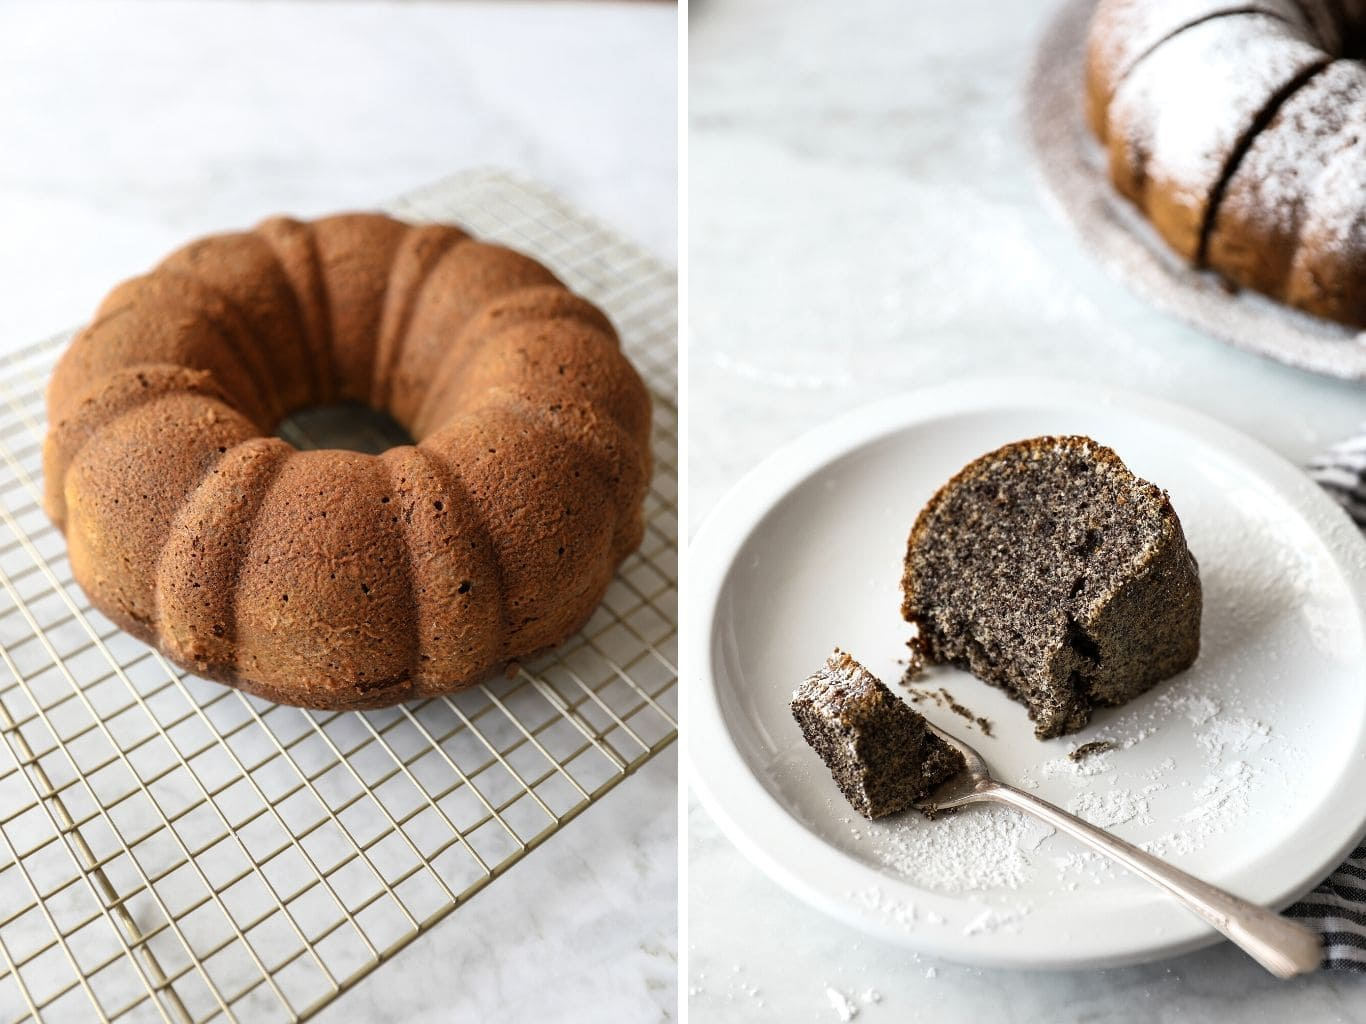 two photos showing whole poppy seed bundt cake, and a slice of this cake on a plate | from verygoodcook.com